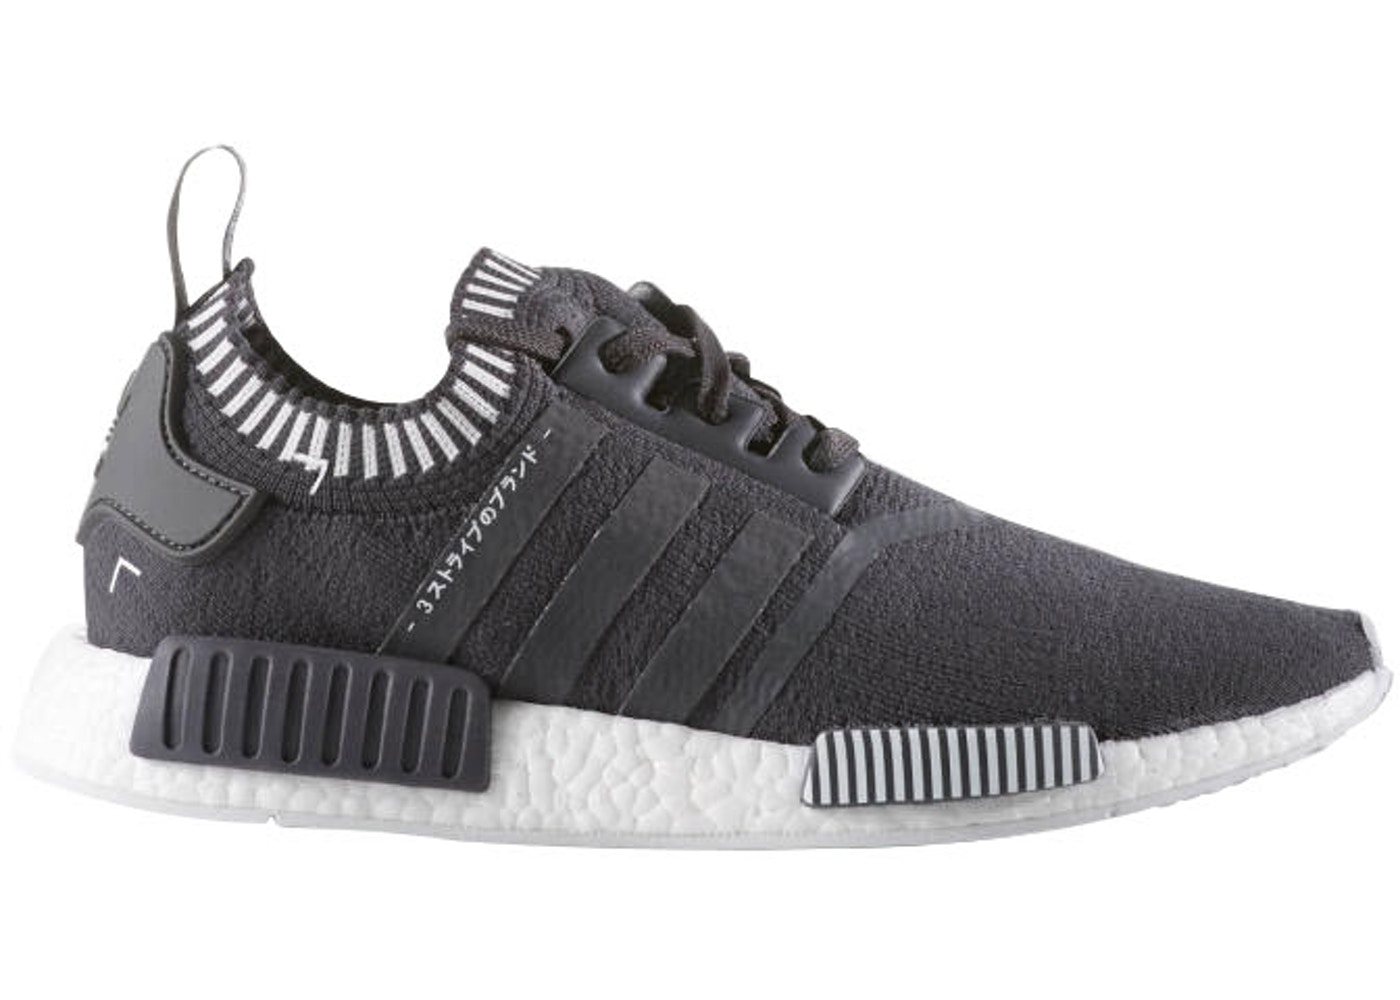 Adidas Nmd R1 Japan Boost Grey S81849